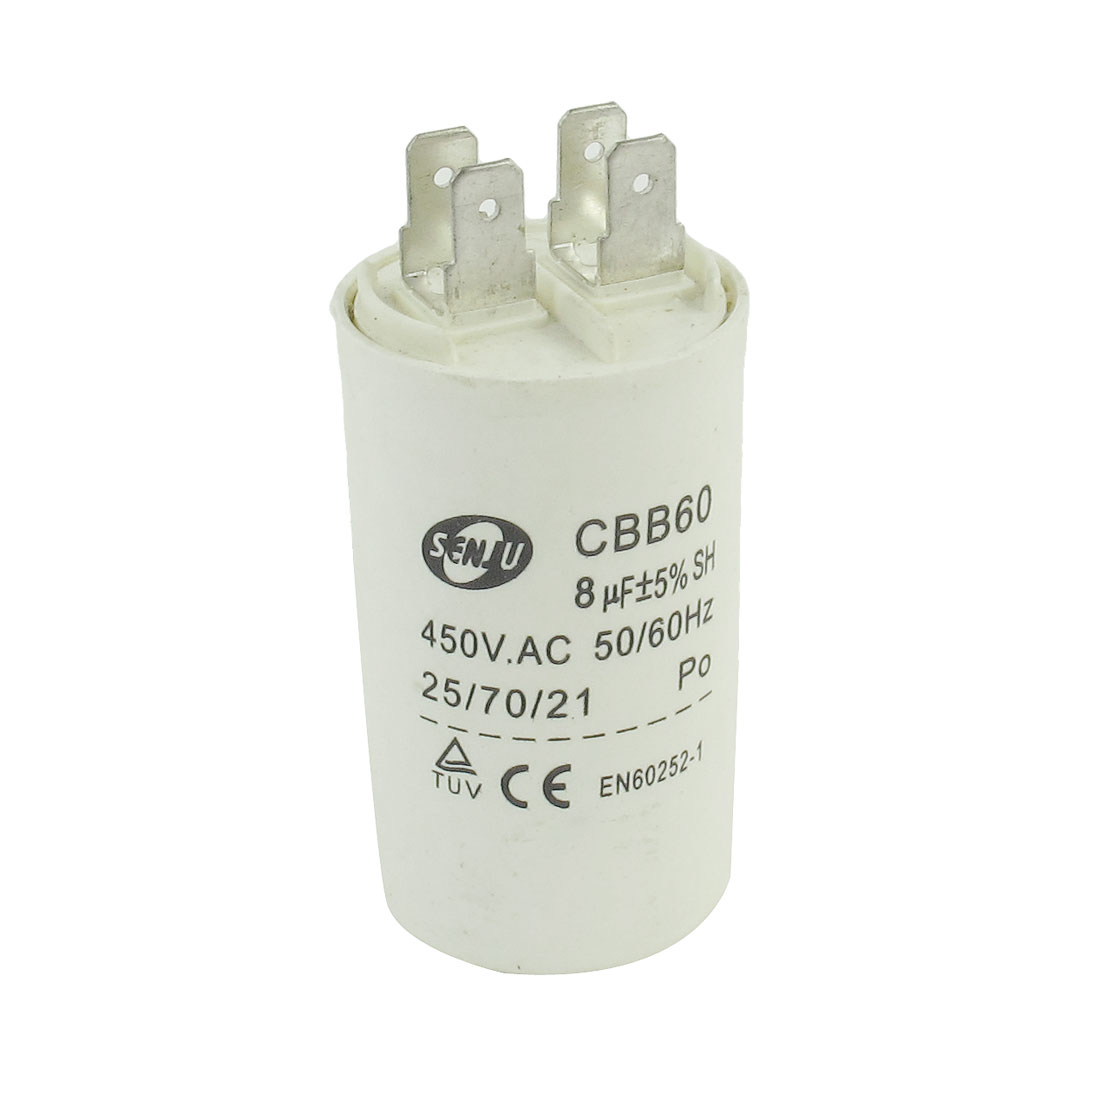 Air Conditioner AC 450V 8uF Cylindrical Motor Capacitor CBB60